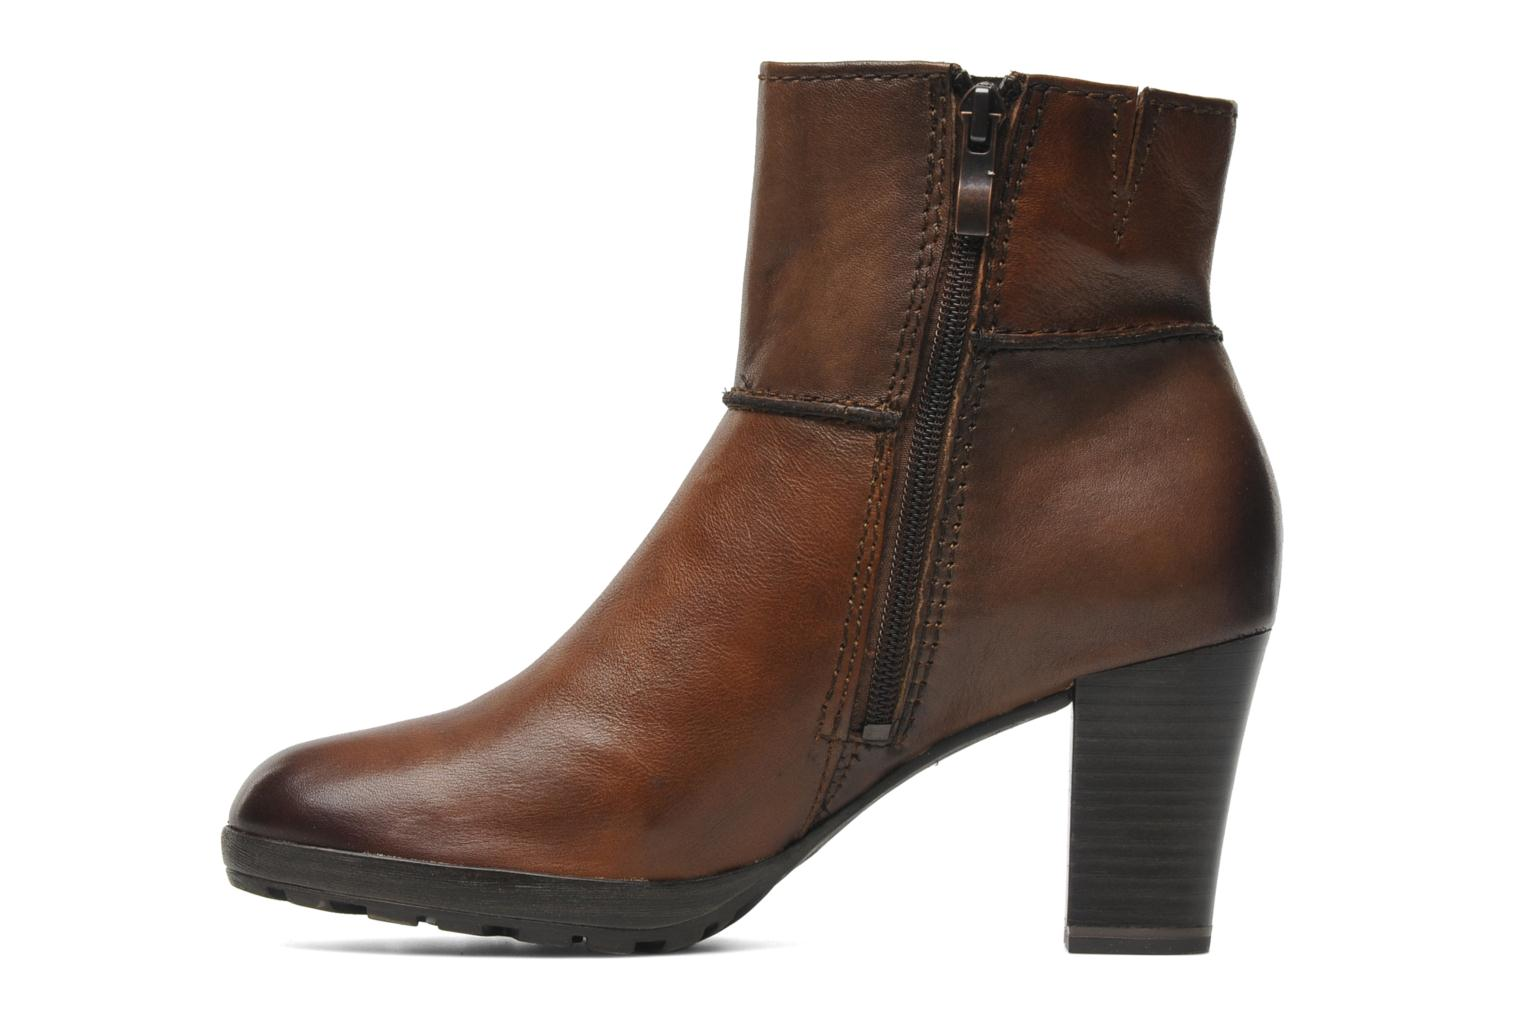 marco tozzi rubia ankle boots in brown at 141623. Black Bedroom Furniture Sets. Home Design Ideas